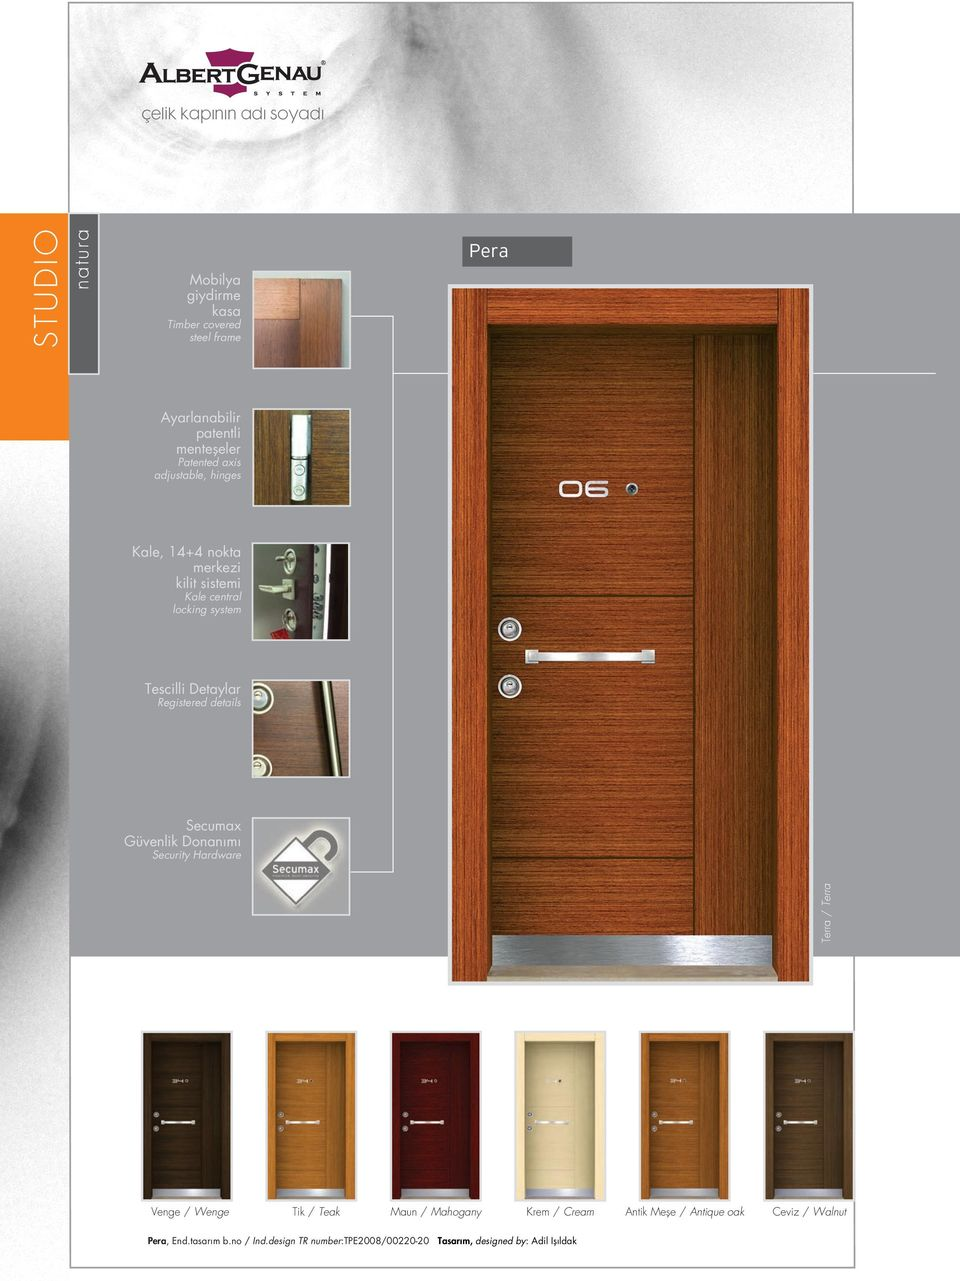 Registered details Secumax Güvenlik Donan m Security Hardware Terra / Terra Venge / Wenge Tik / Teak Krem / Cream